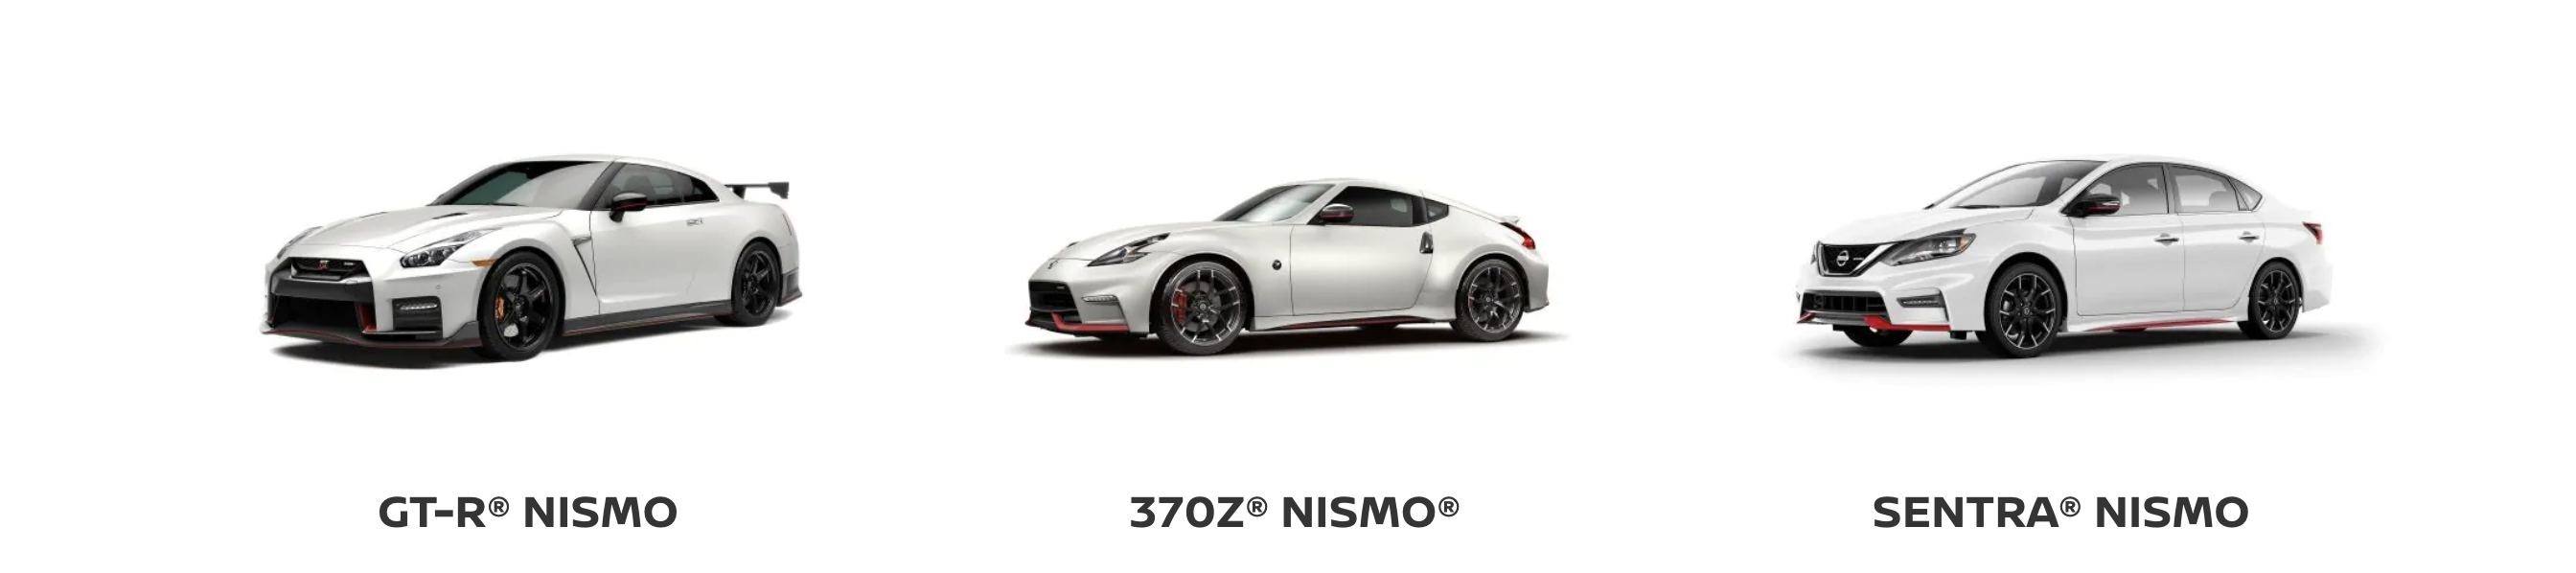 Nismo Vehicles